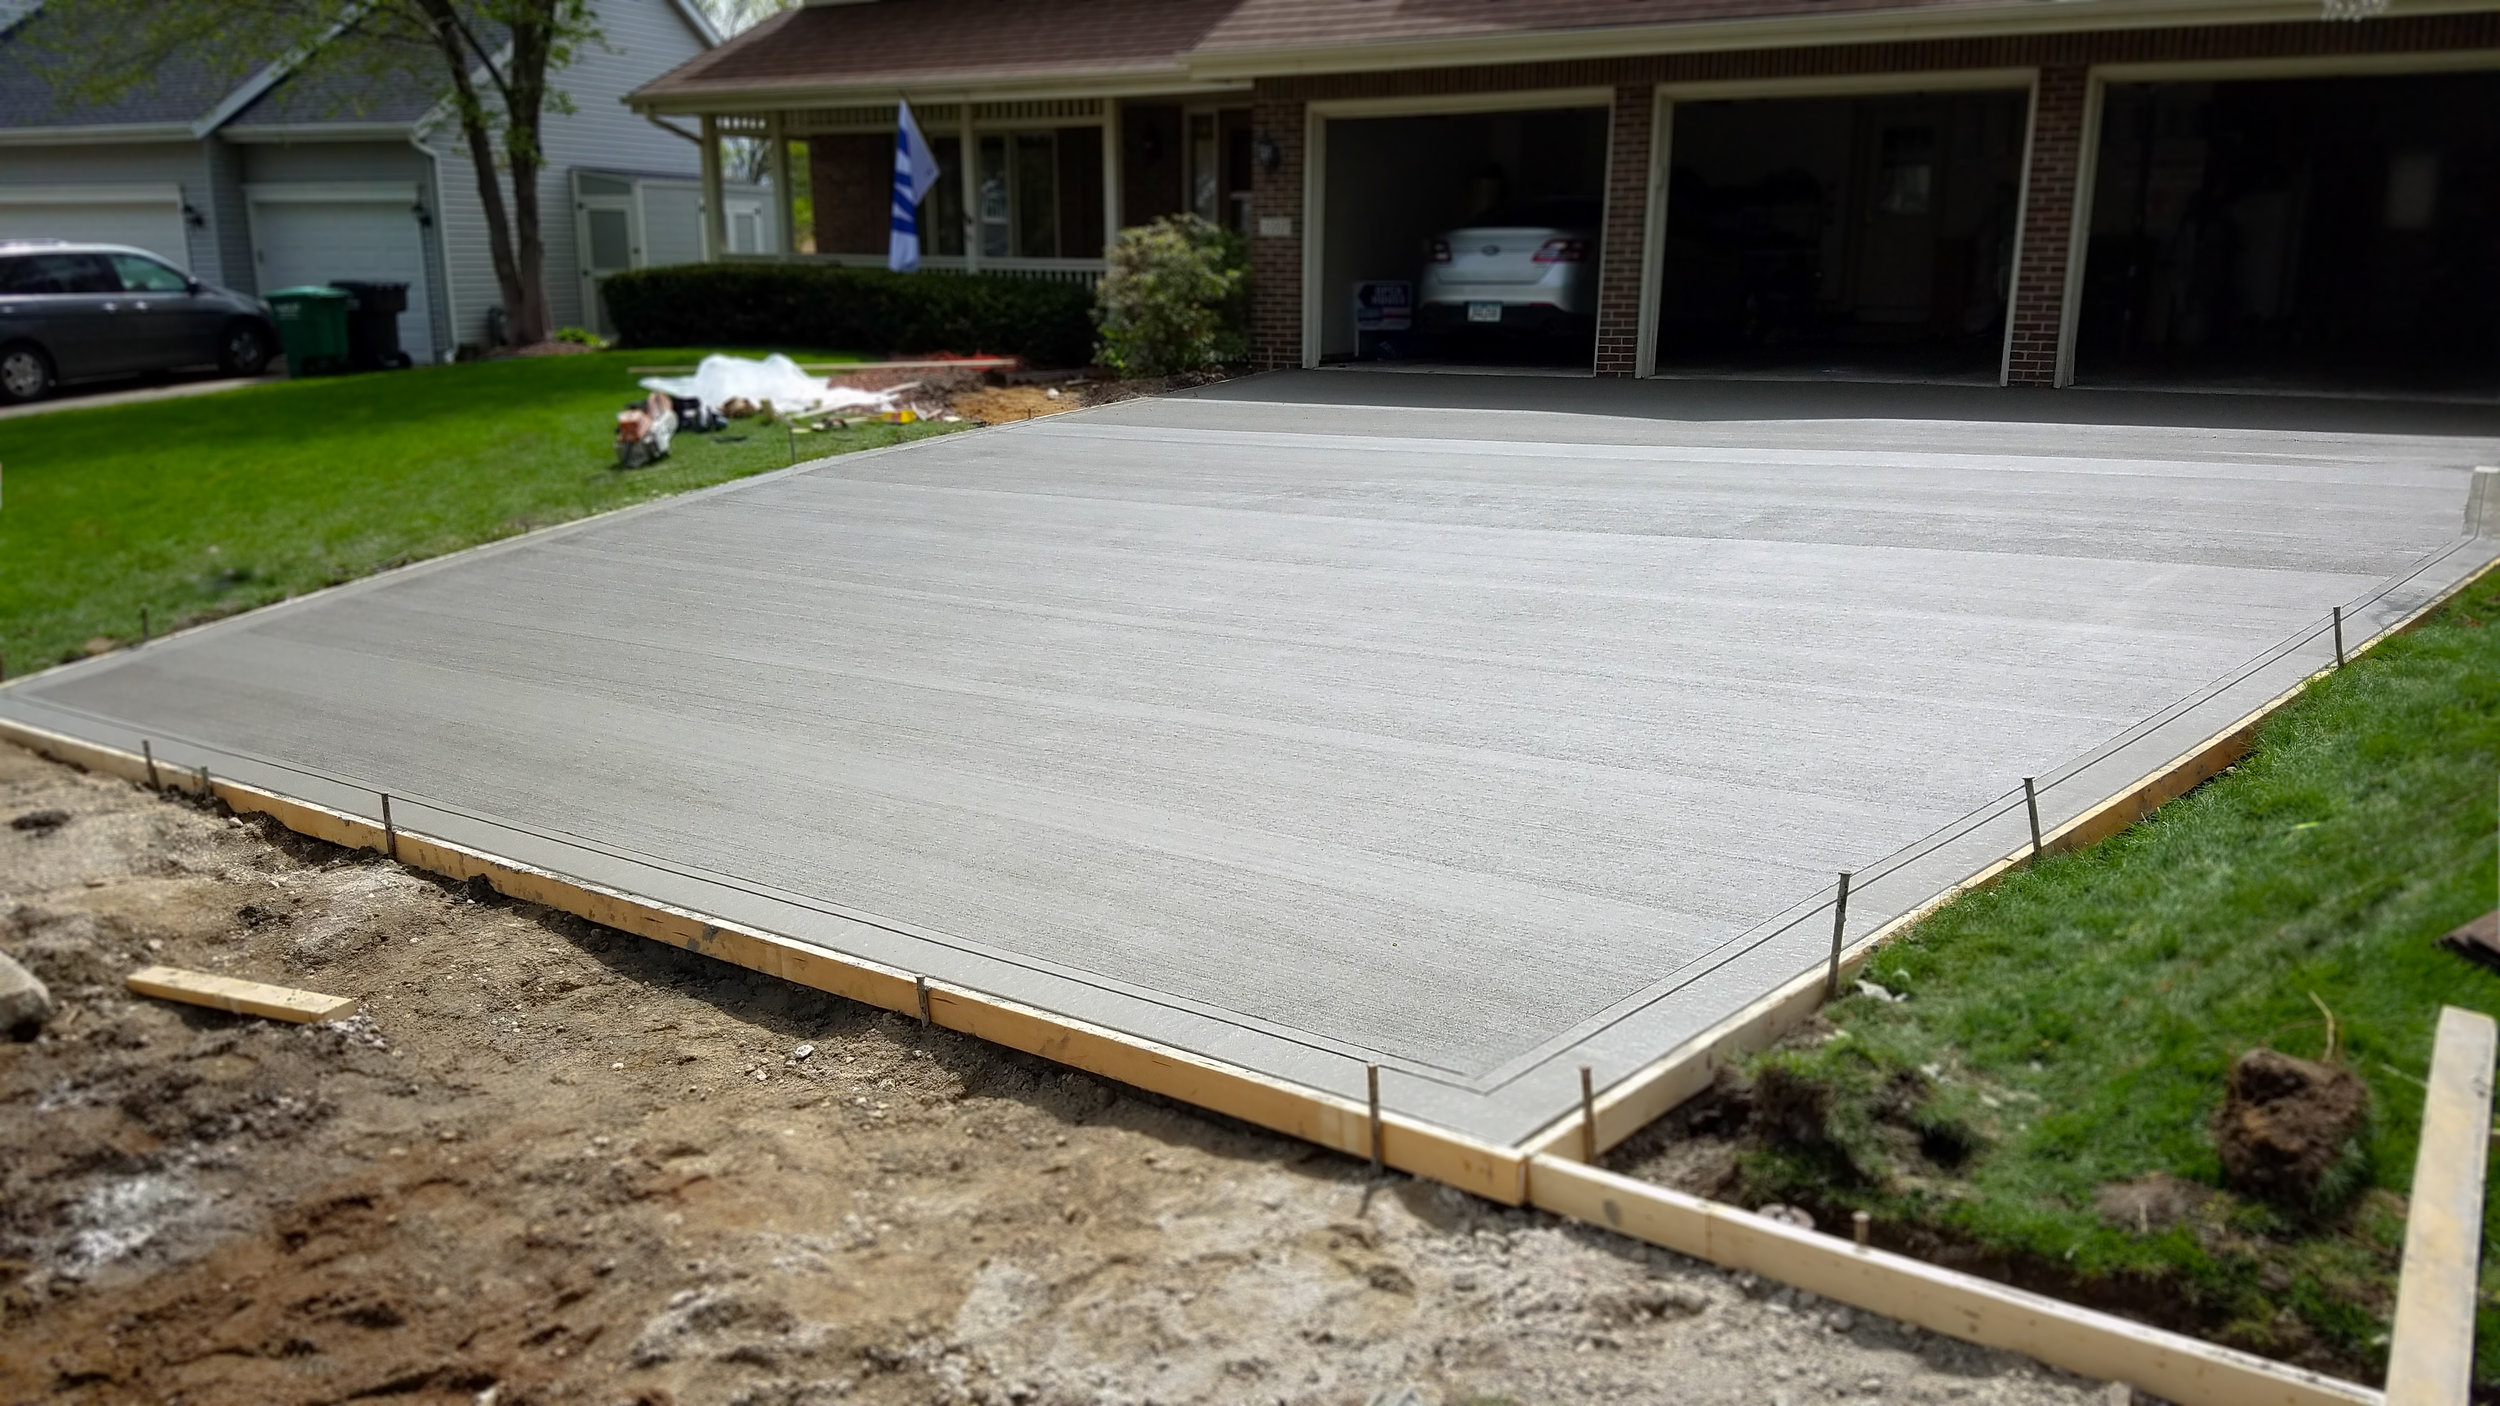 Driveway Replacement in Des Moines